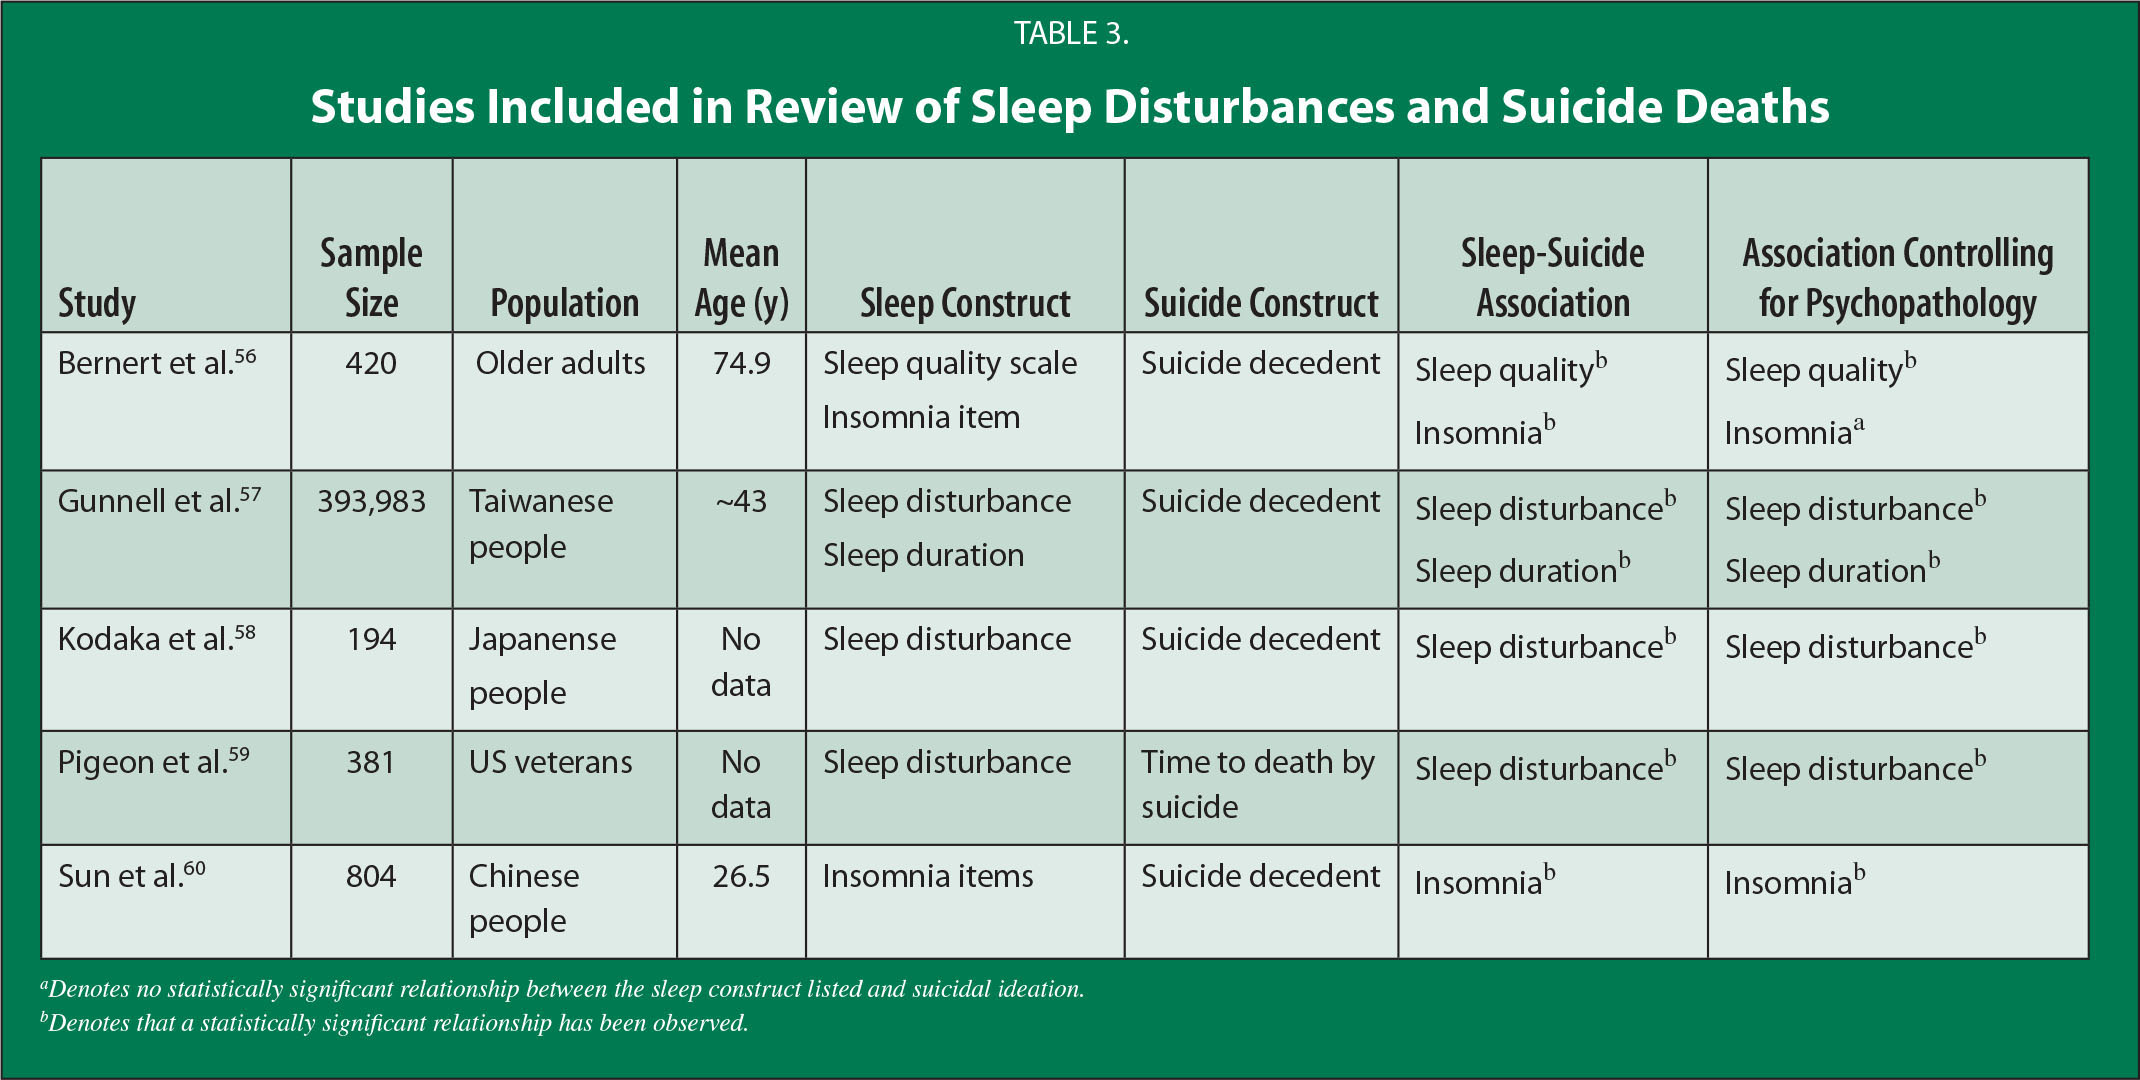 Studies Included in Review of Sleep Disturbances and Suicide Deaths